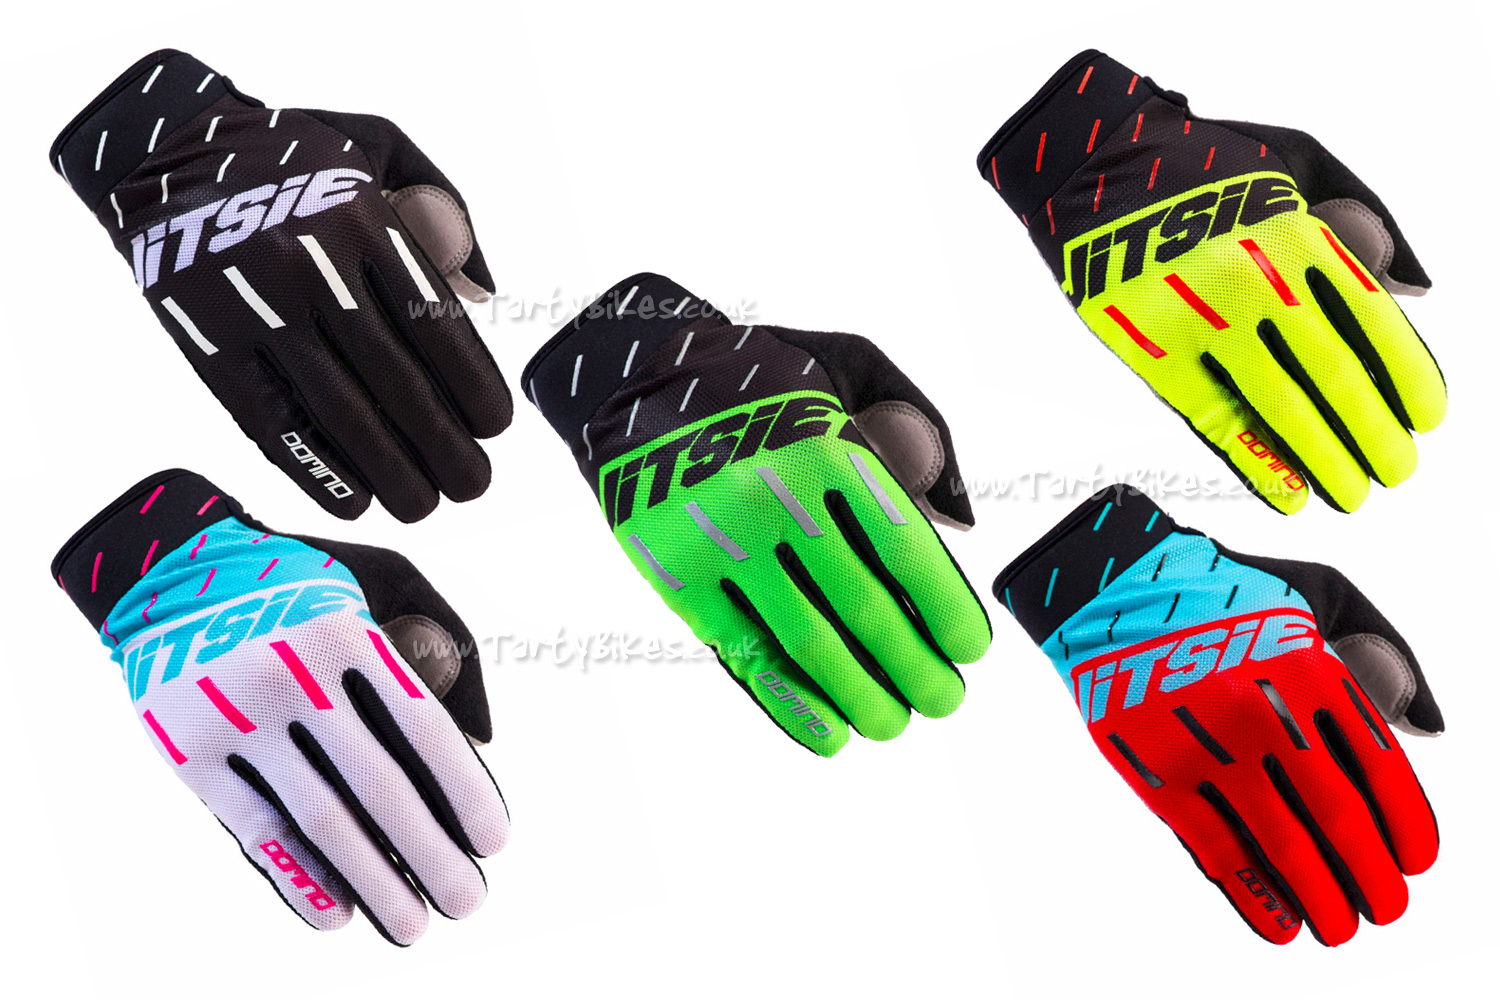 Jitsie G3 Domino Gloves